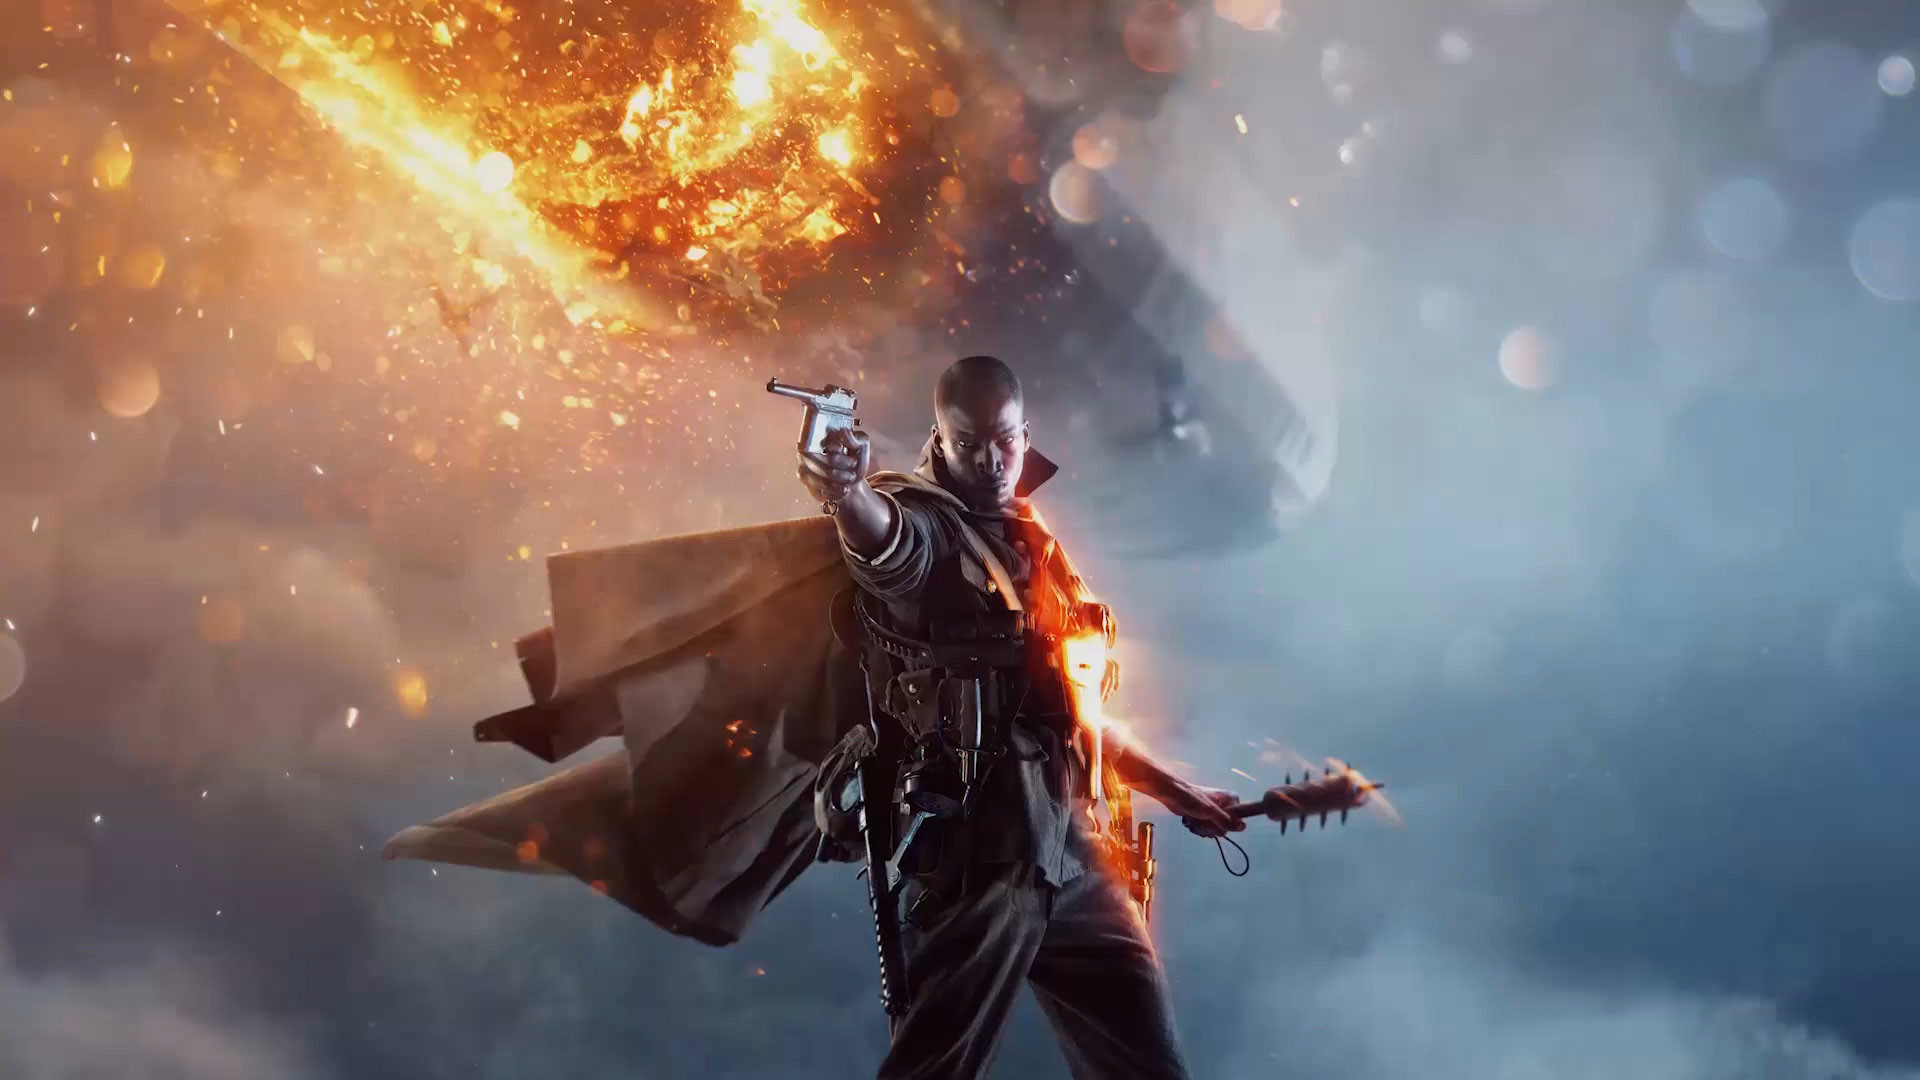 1920x1080 Battlefield 1 4K Wallpaper | Battlefield 1 1080p Wallpaper ...